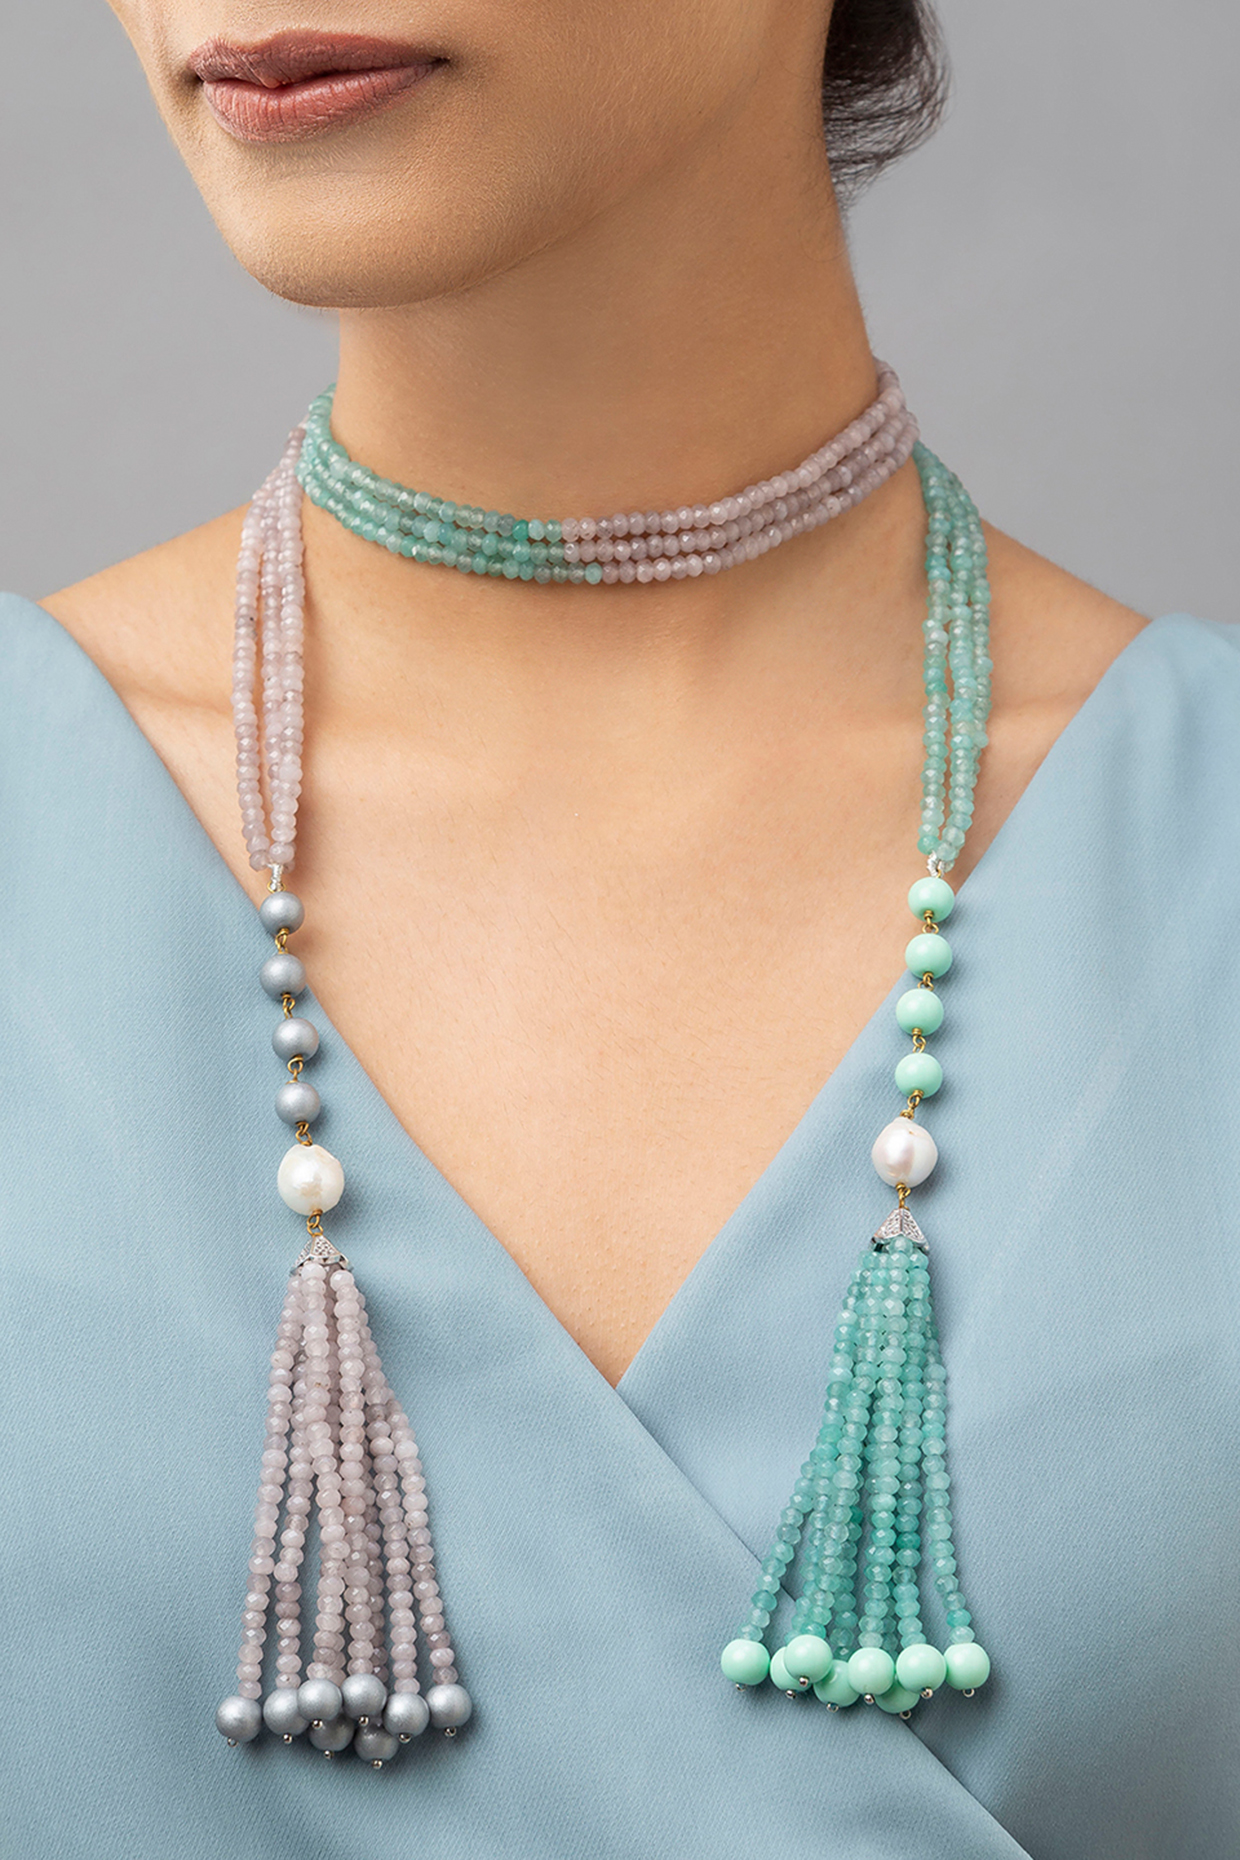 Gold Finish Baroque Pearls & Agate Beads Necklace by Joules By Radhika